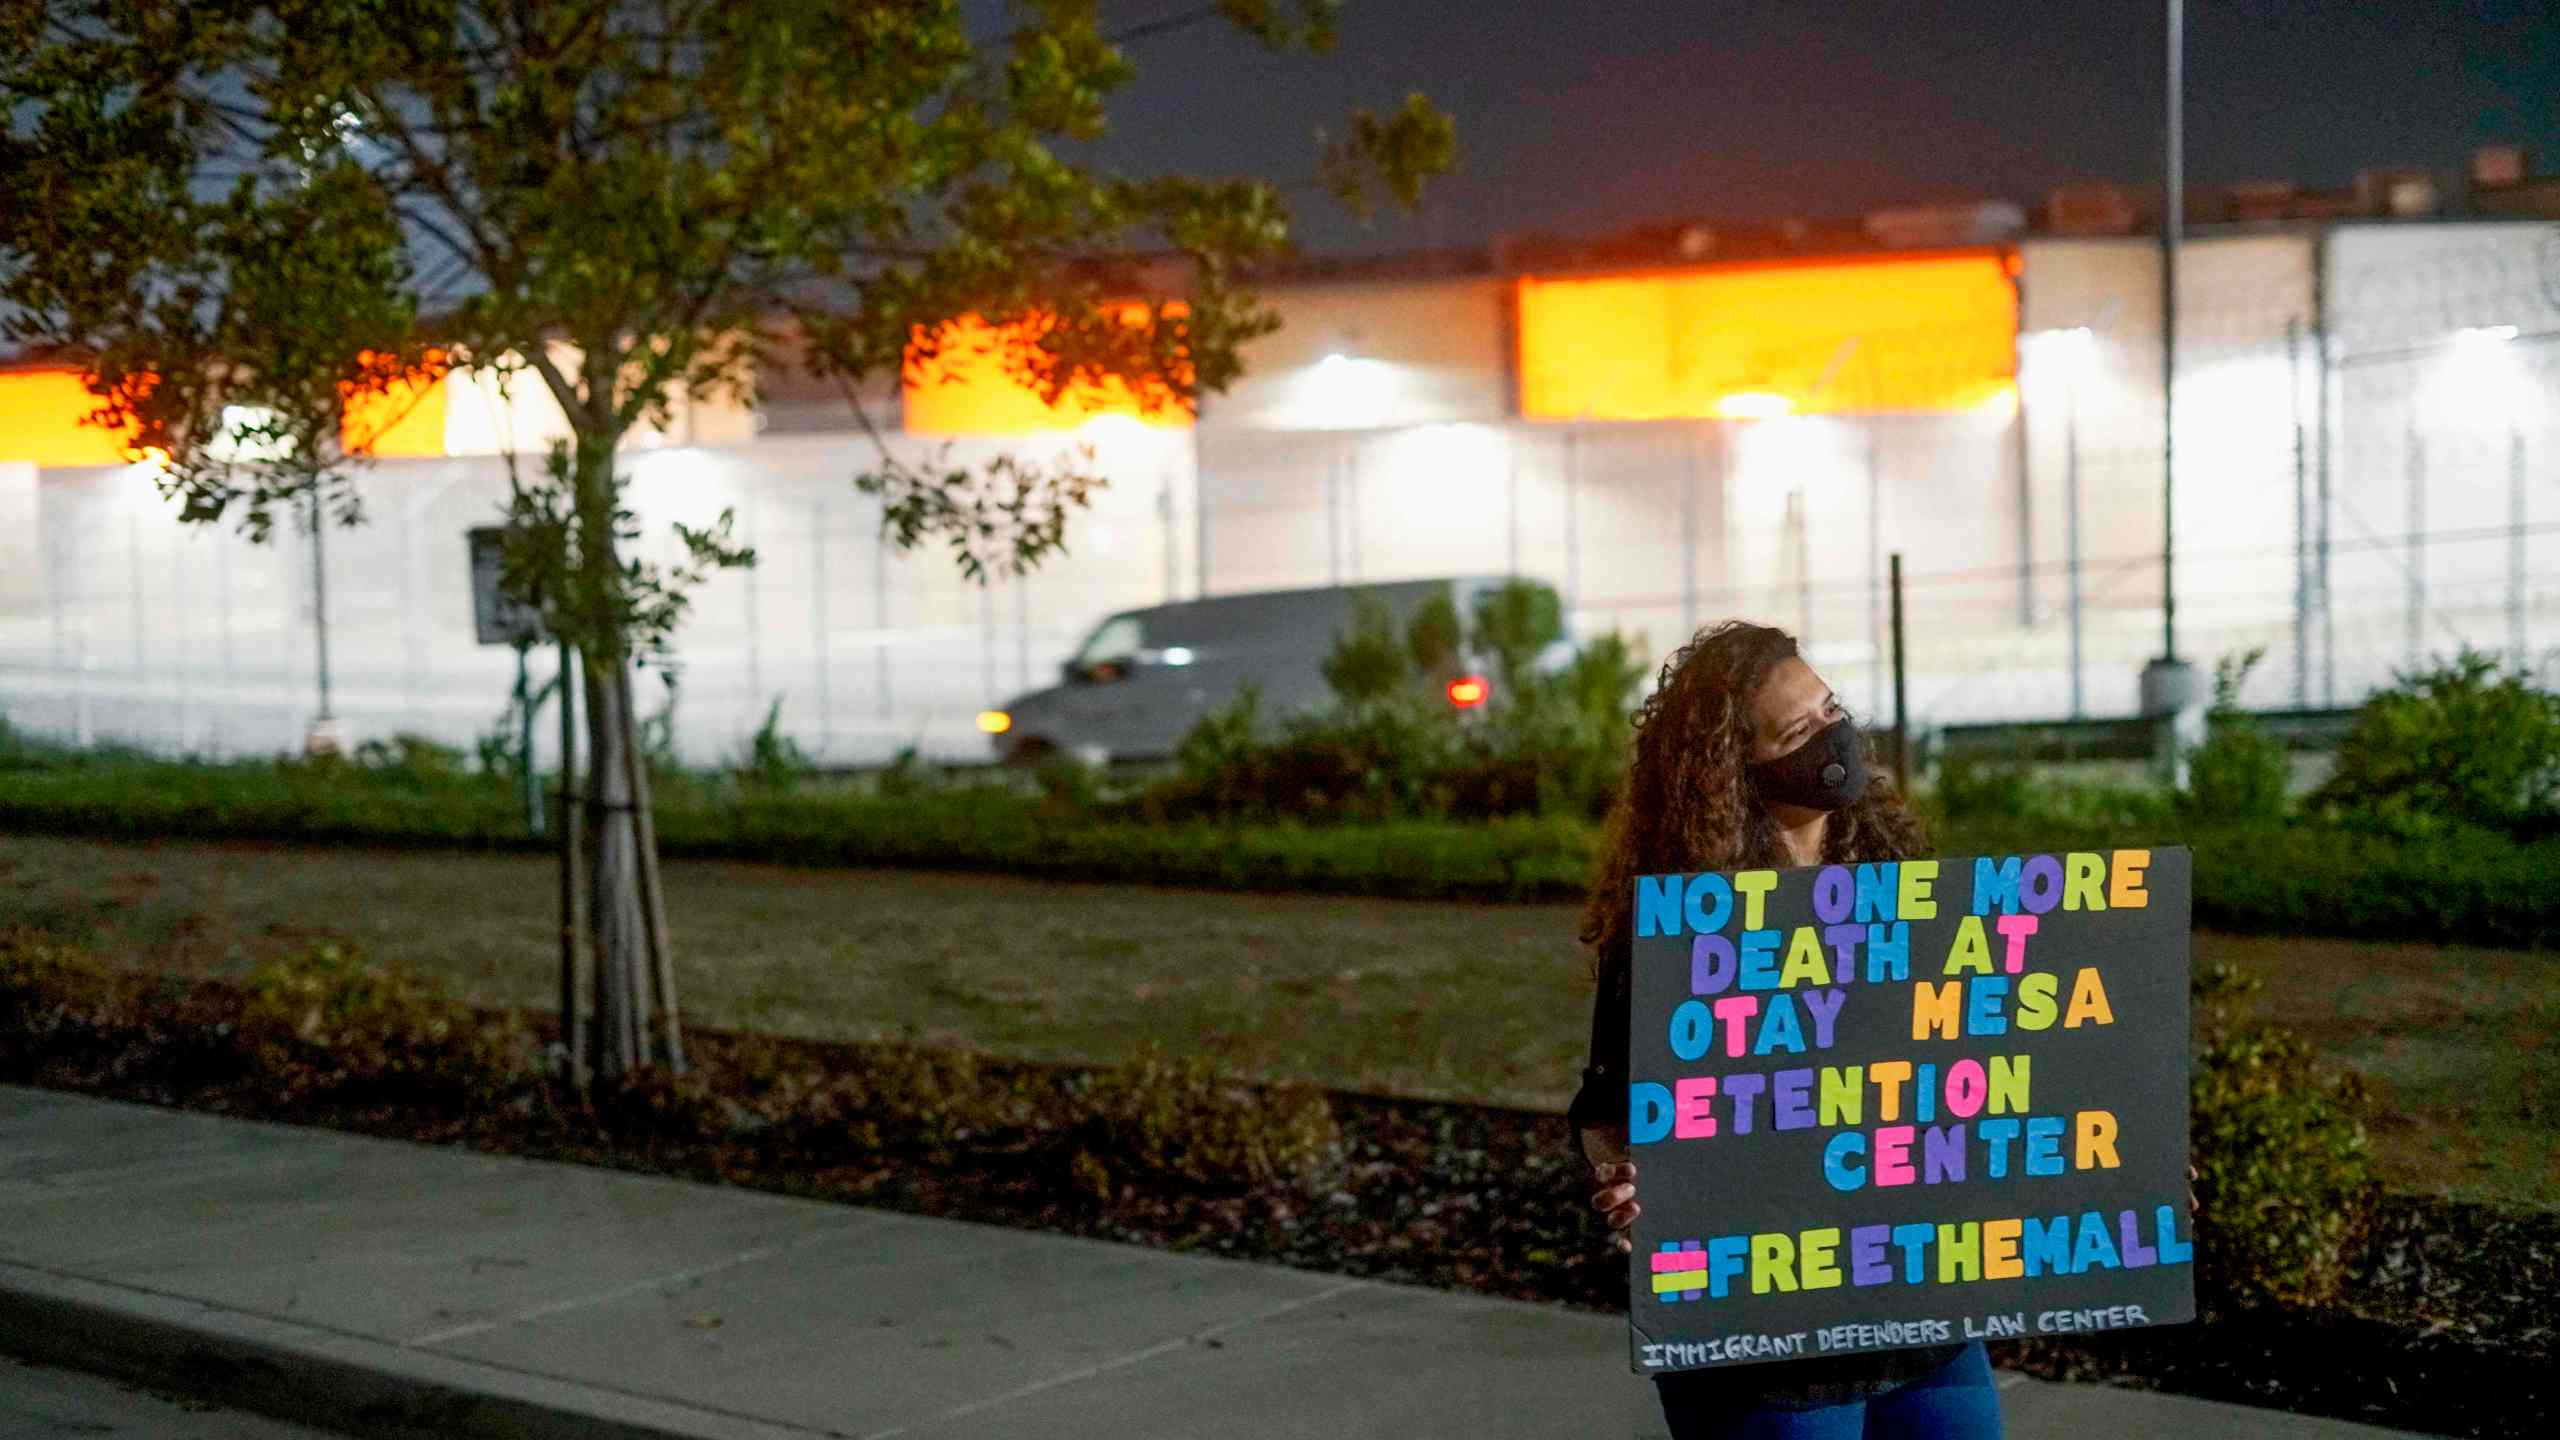 """A Protester stands outside the Otay Mesa Detention Center during a """"Vigil for Carlos"""" rally on May 9, 2020. The vigil was held to commemorate Carlos Ernesto Escobar Mejia, the first immigrant who died of COVID-19 related symptoms while being held at the detention Center. (SANDY HUFFAKER / AFP via Getty Images)"""